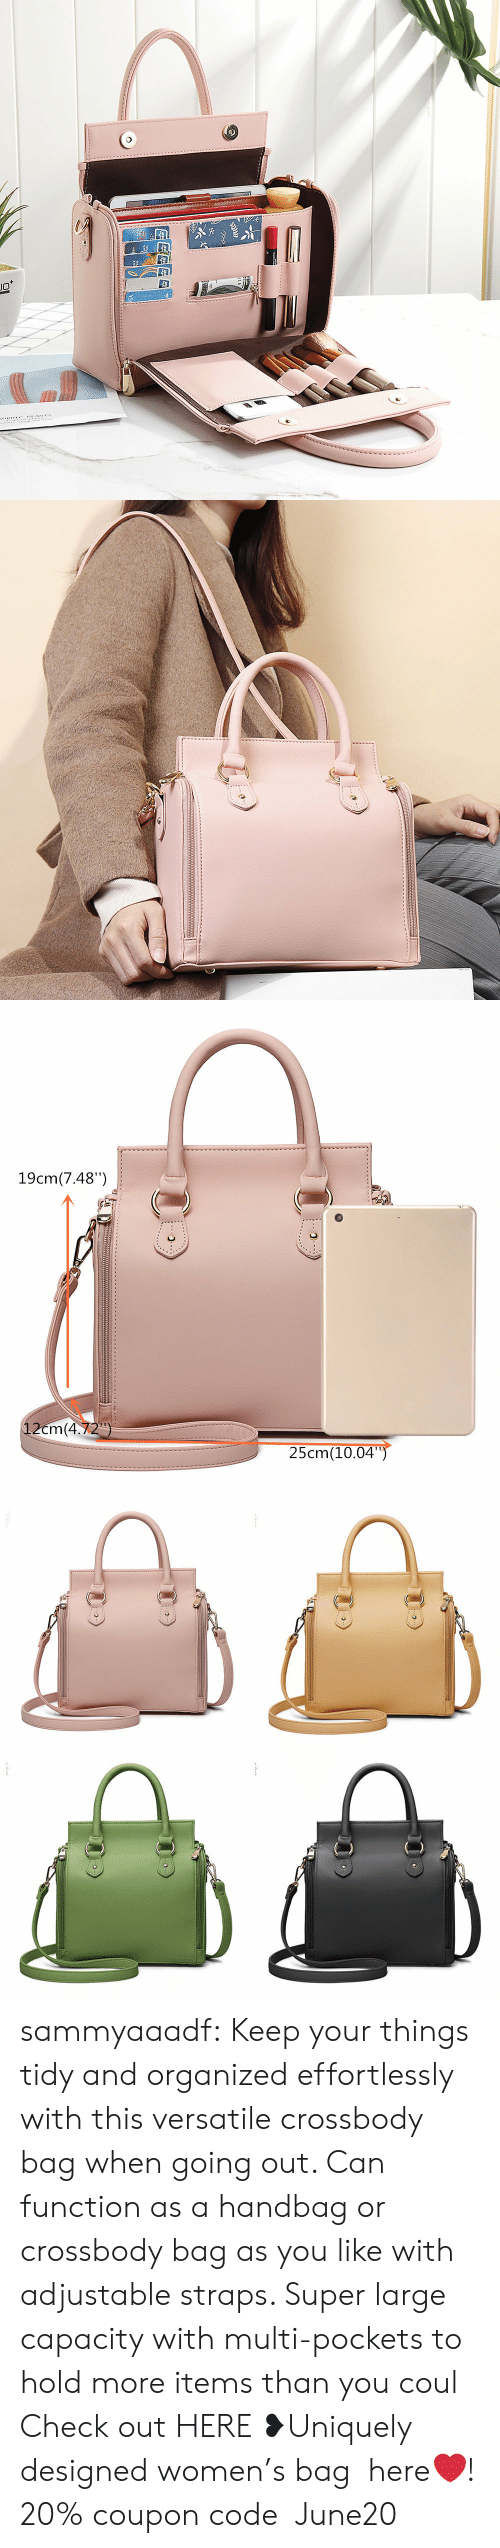 "Tumblr, Blog, and Women: JC  ORDIC EANTS   19cm(7.48"")  12cm(4.72)  25cm(10.04"") sammyaaadf: Keep your things tidy and organized effortlessly with this versatile crossbody bag when going out. Can function as a handbag or crossbody bag as you like with adjustable straps. Super large capacity with multi-pockets to hold more items than you coul Check out HERE ❥Uniquely designed women's bag  here❤! 20% coupon code:June20"